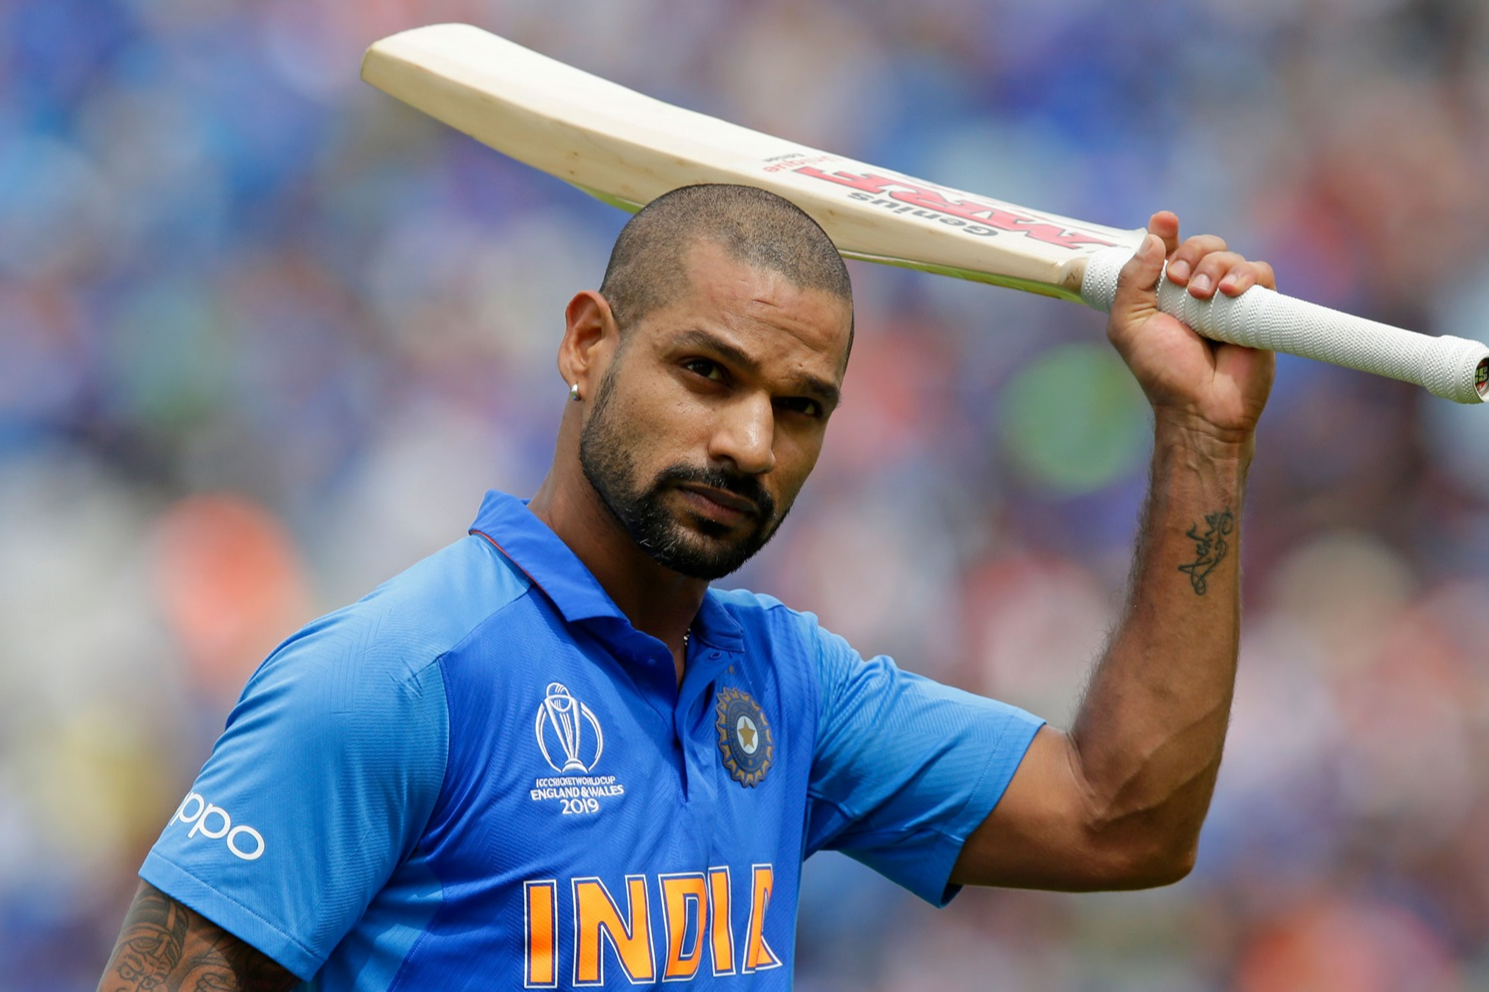 CWC'19- Dhawan ruled out of the World Cup